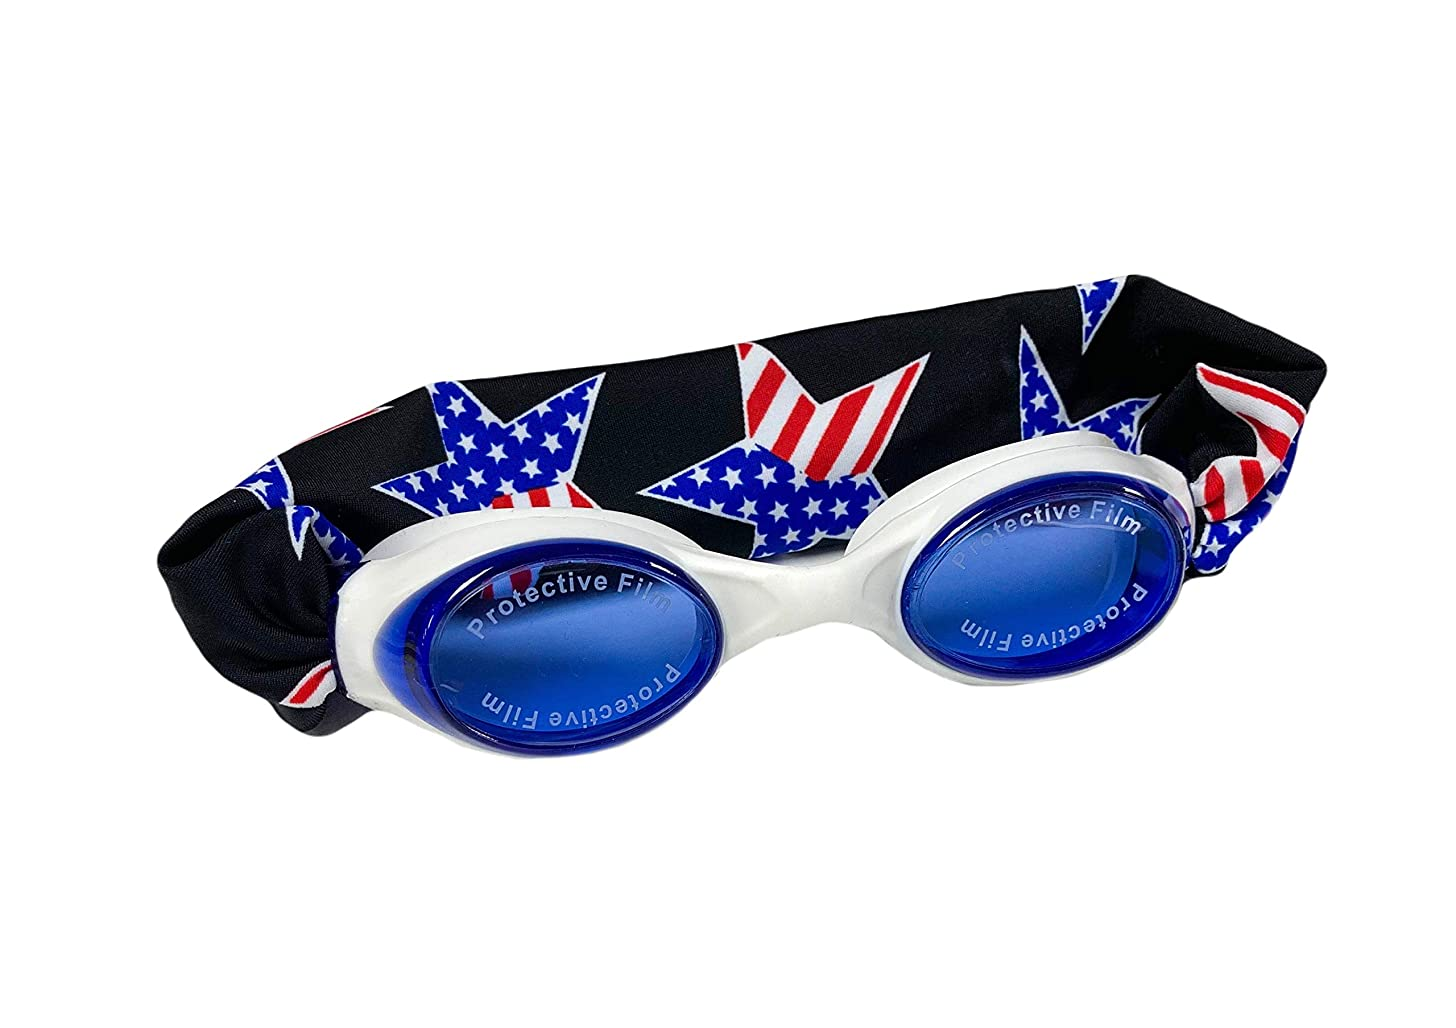 Splash 'Merica Swim Goggles - Fun Fashionable Comfortable - Fits Kids & Adults - Won't Pull Your Hair - Easy to Use - High Visibility Anti-Fog Lenses - Patent Pending